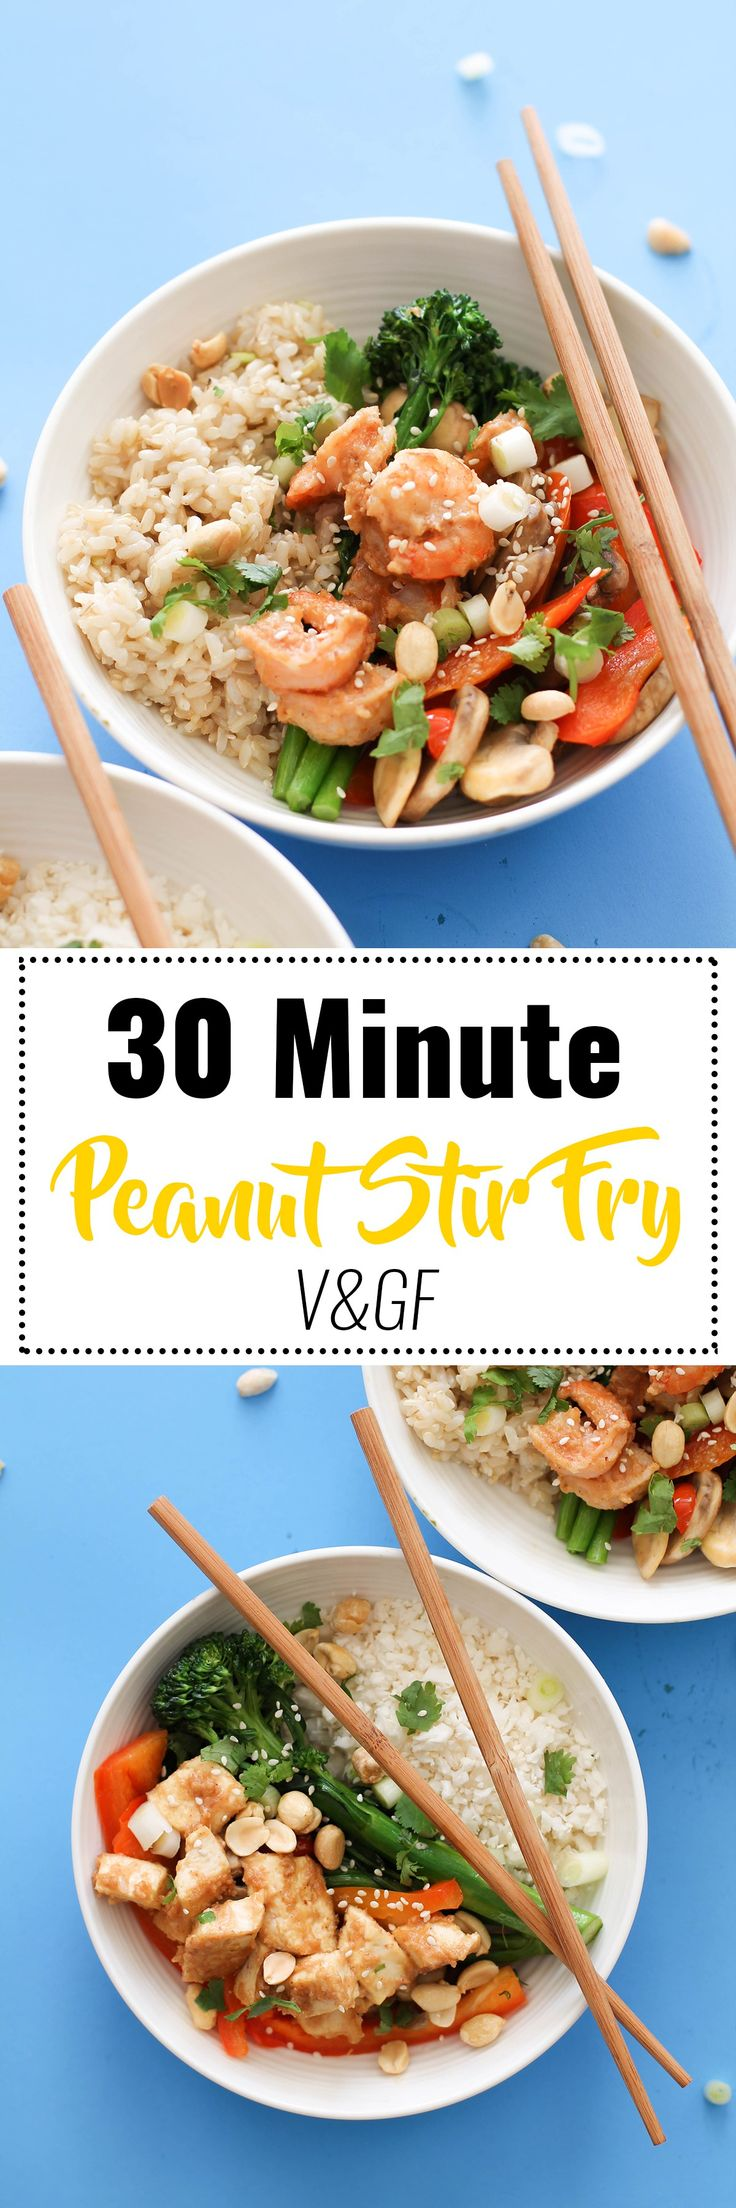 This 30 minute peanut stir-fry is an easy and delicious dinner option. Filled with protein, healthy fats, complex carbs, and fiber, this is healthier than any takeout option you could get. Plus, it's versatile to fit an dietary needs.